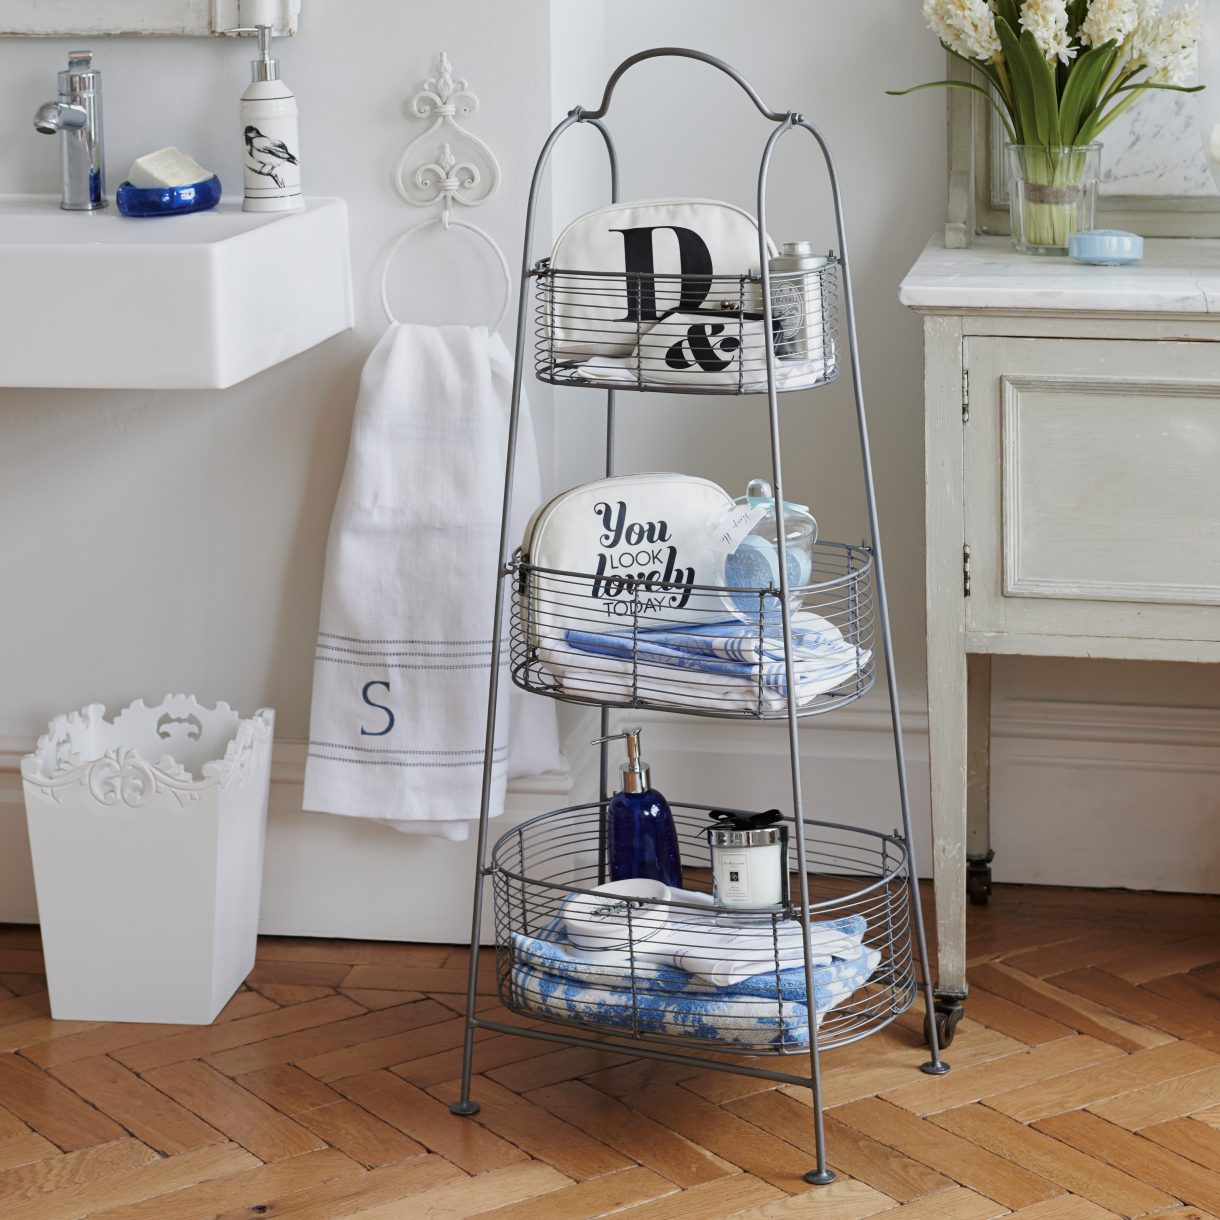 Think about freestanding accessories